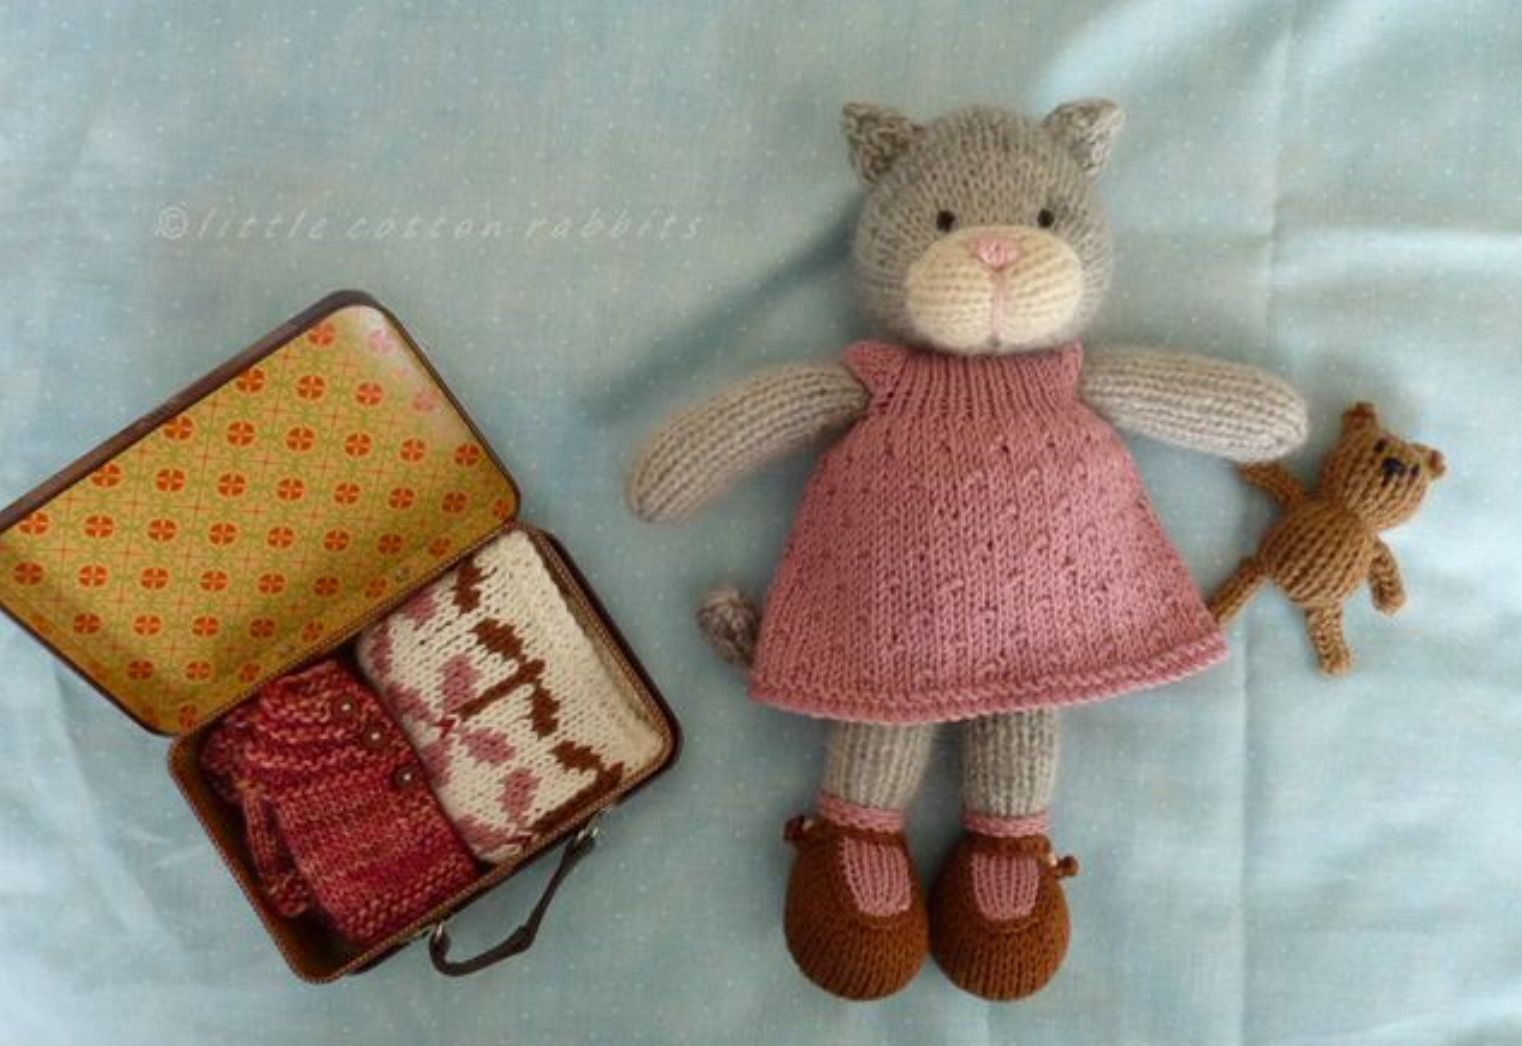 Pin by Elly Rozema on bunny | Pinterest | Knit animals, Rabbit and Bunny